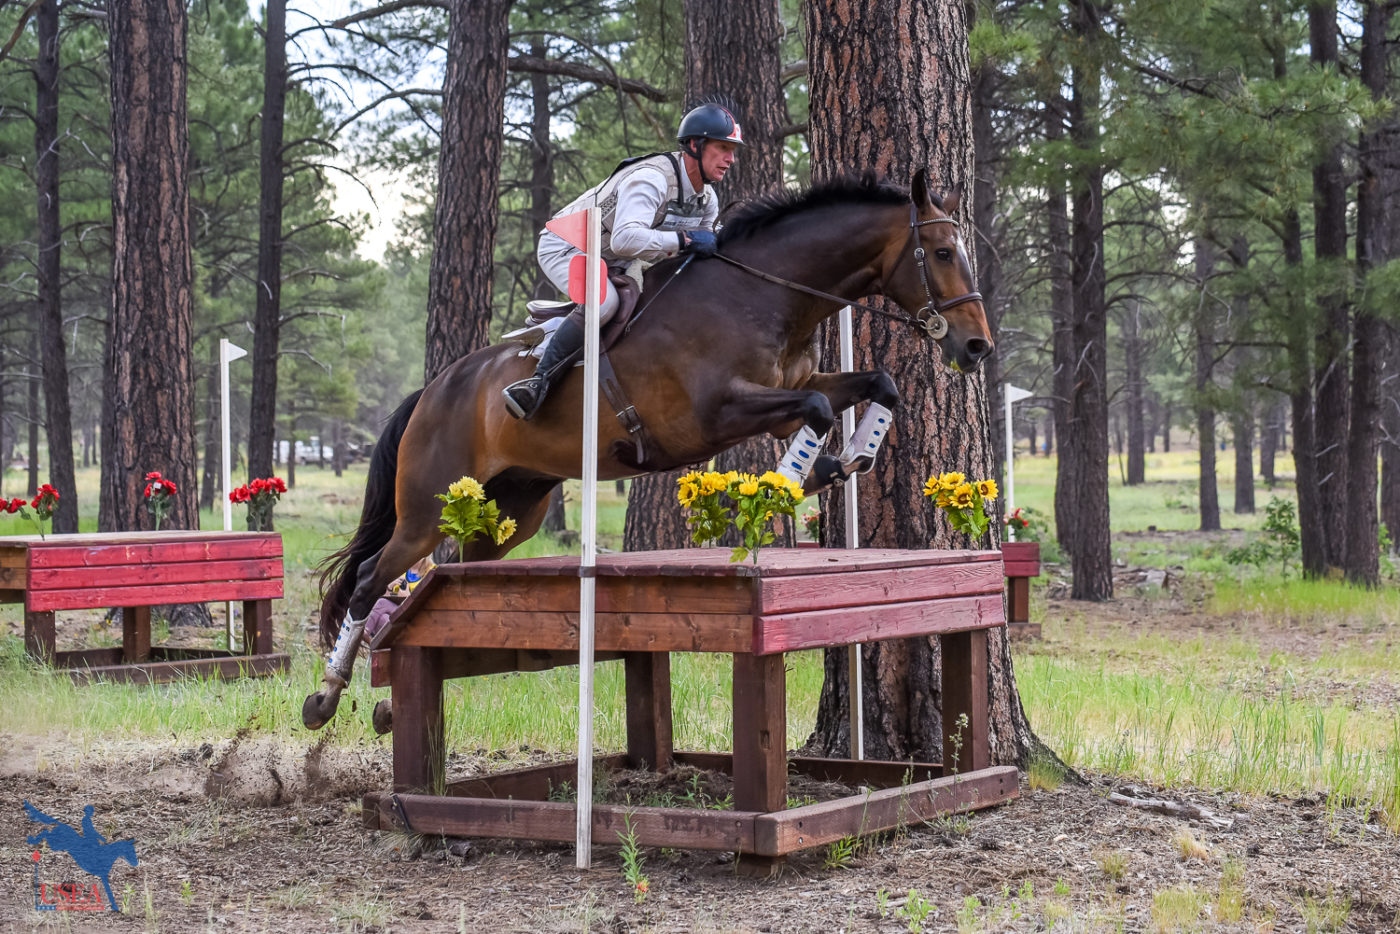 Course Designer James Atkinson taking Fleur de Lis for a spin around the Intermediate course. USEA/Jessica Duffy Photo.